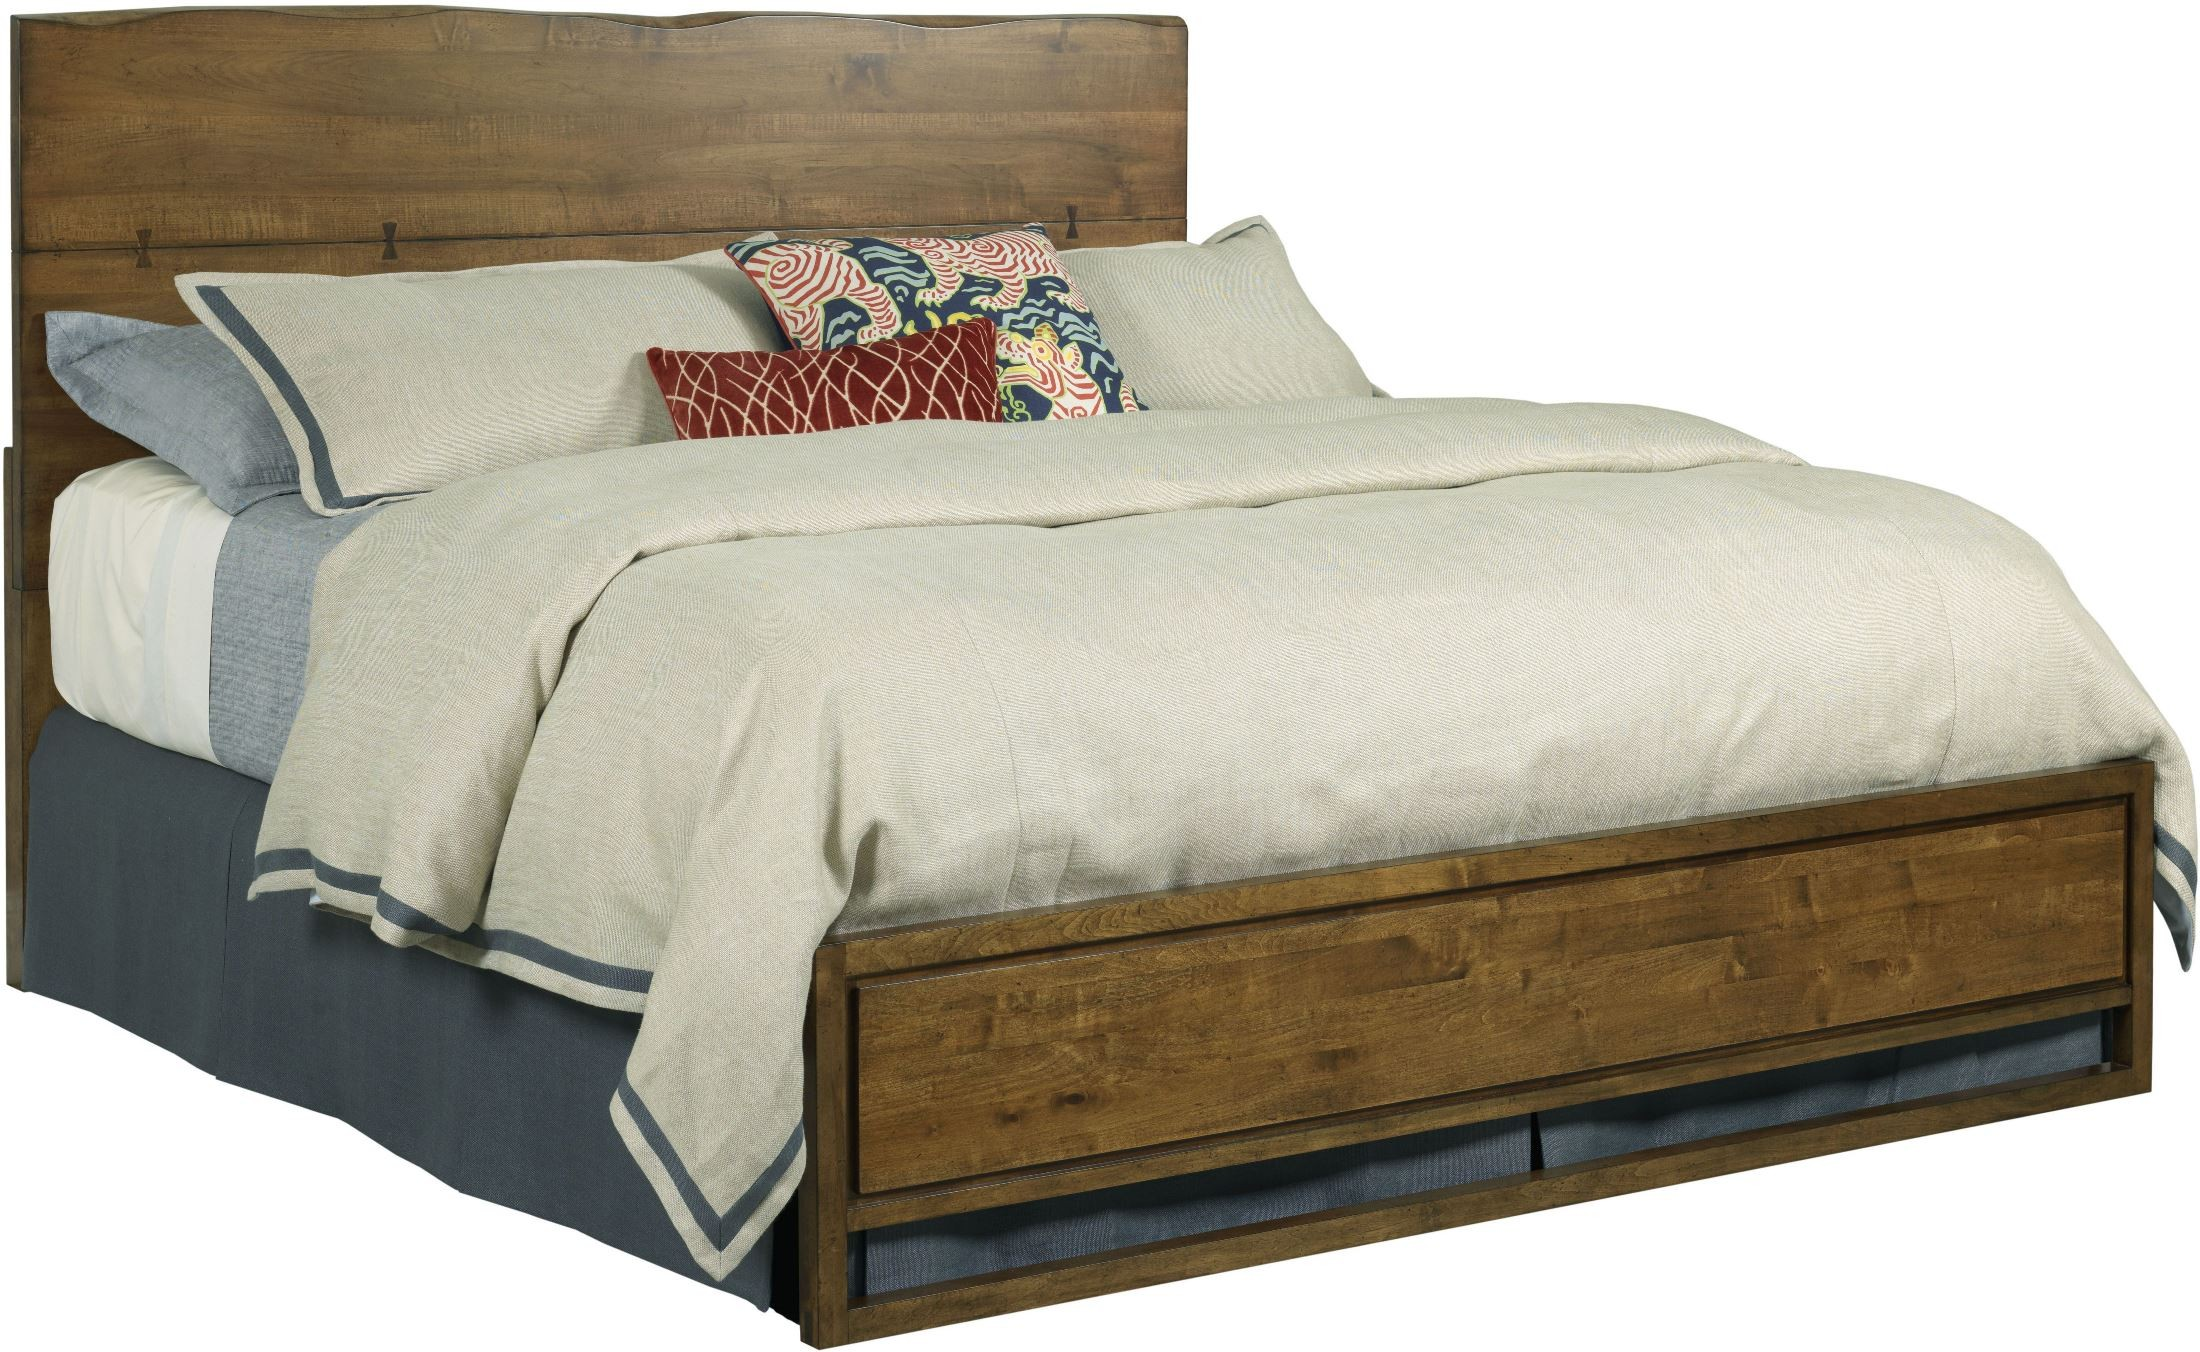 Traverse brown craftsman cal king platform bed from for Craftsman bed